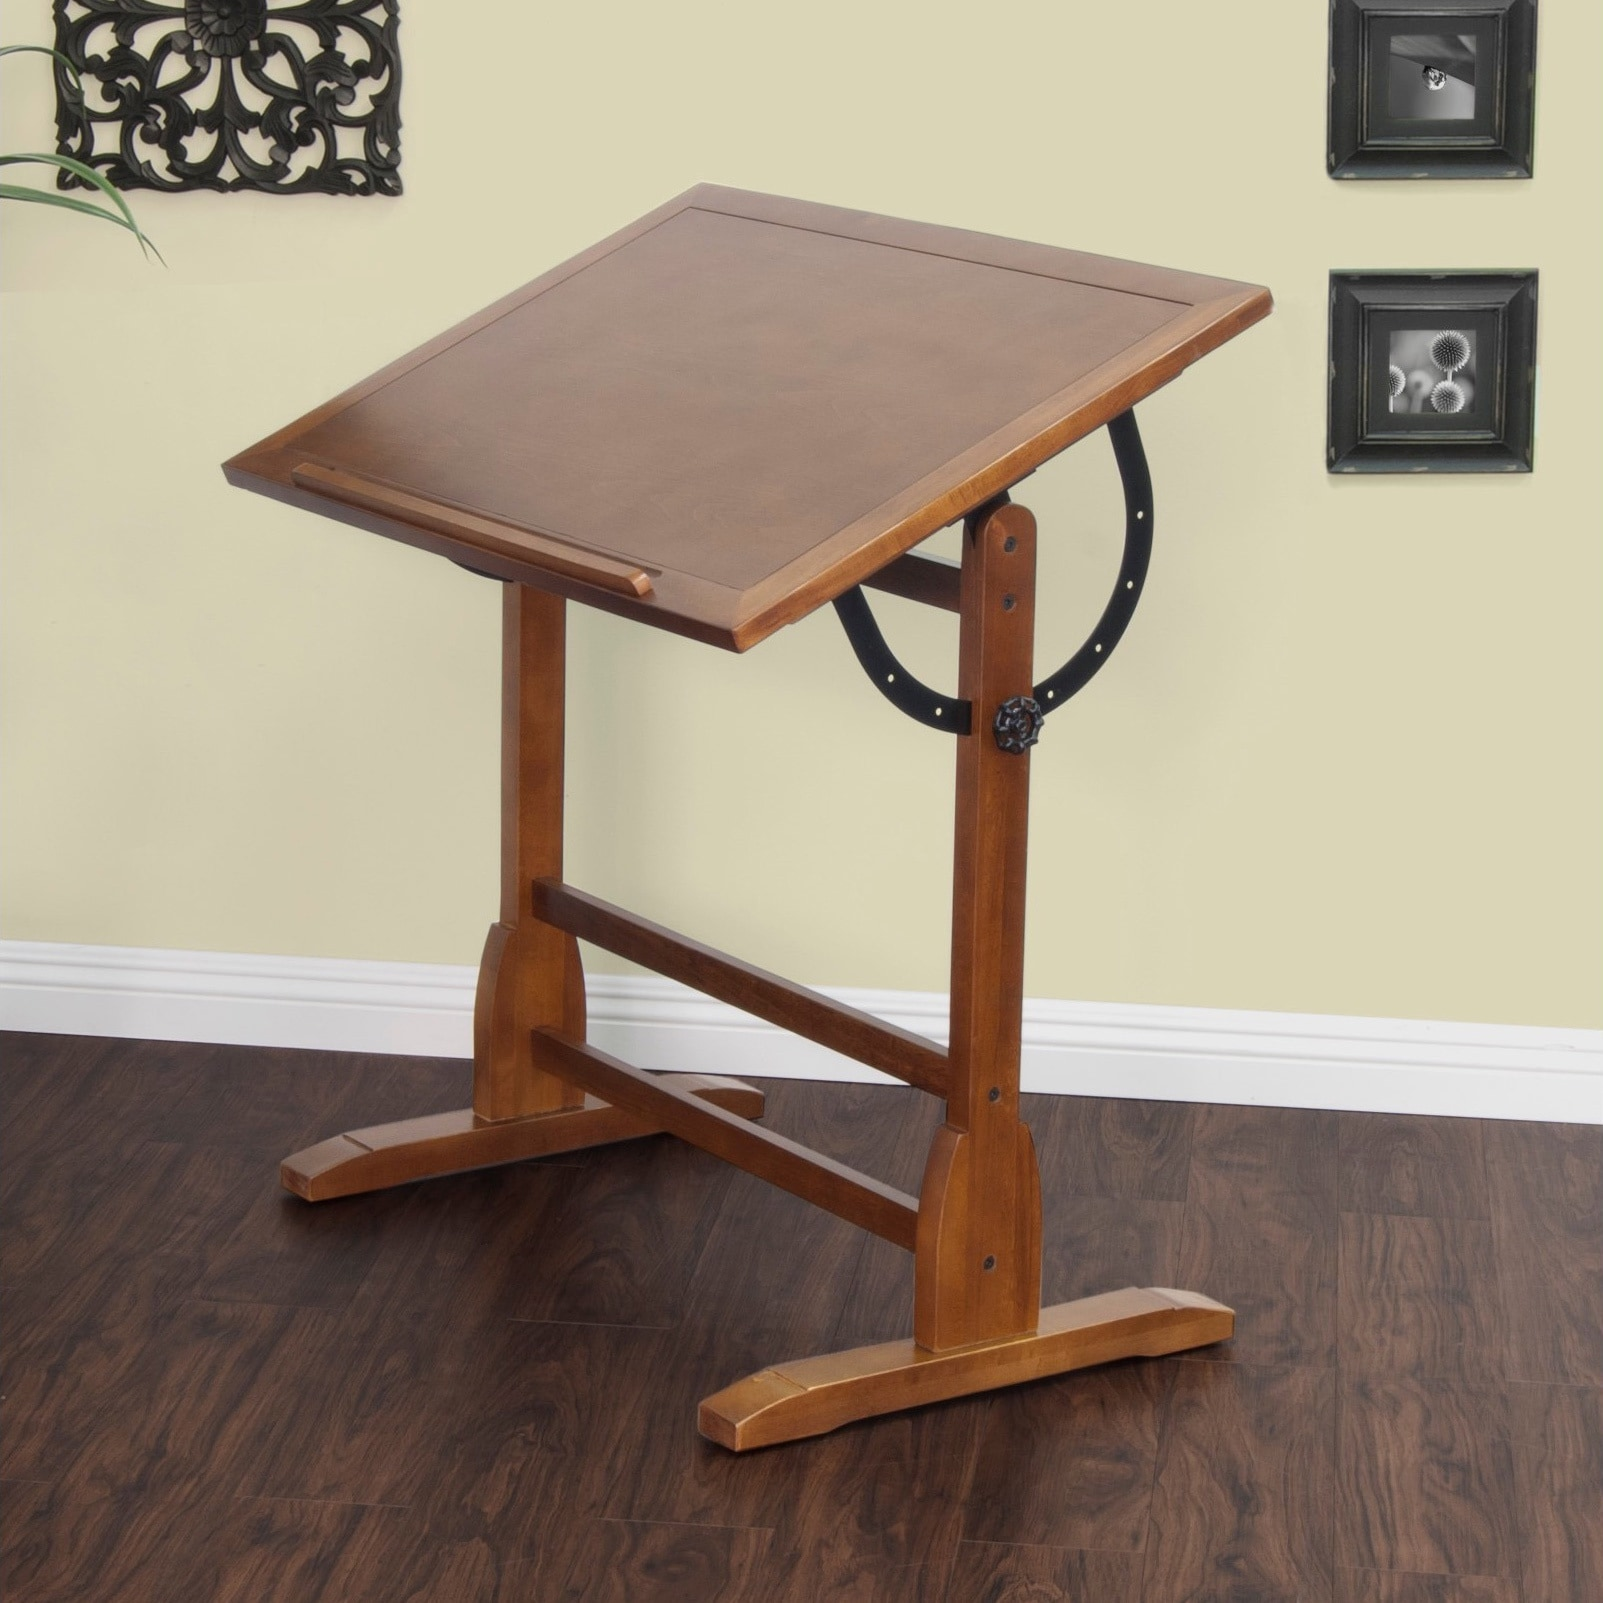 Studio Designs 36 Inch Clic Rustic Oak Wood Vintage Drafting Table Free Shipping Today 15214762